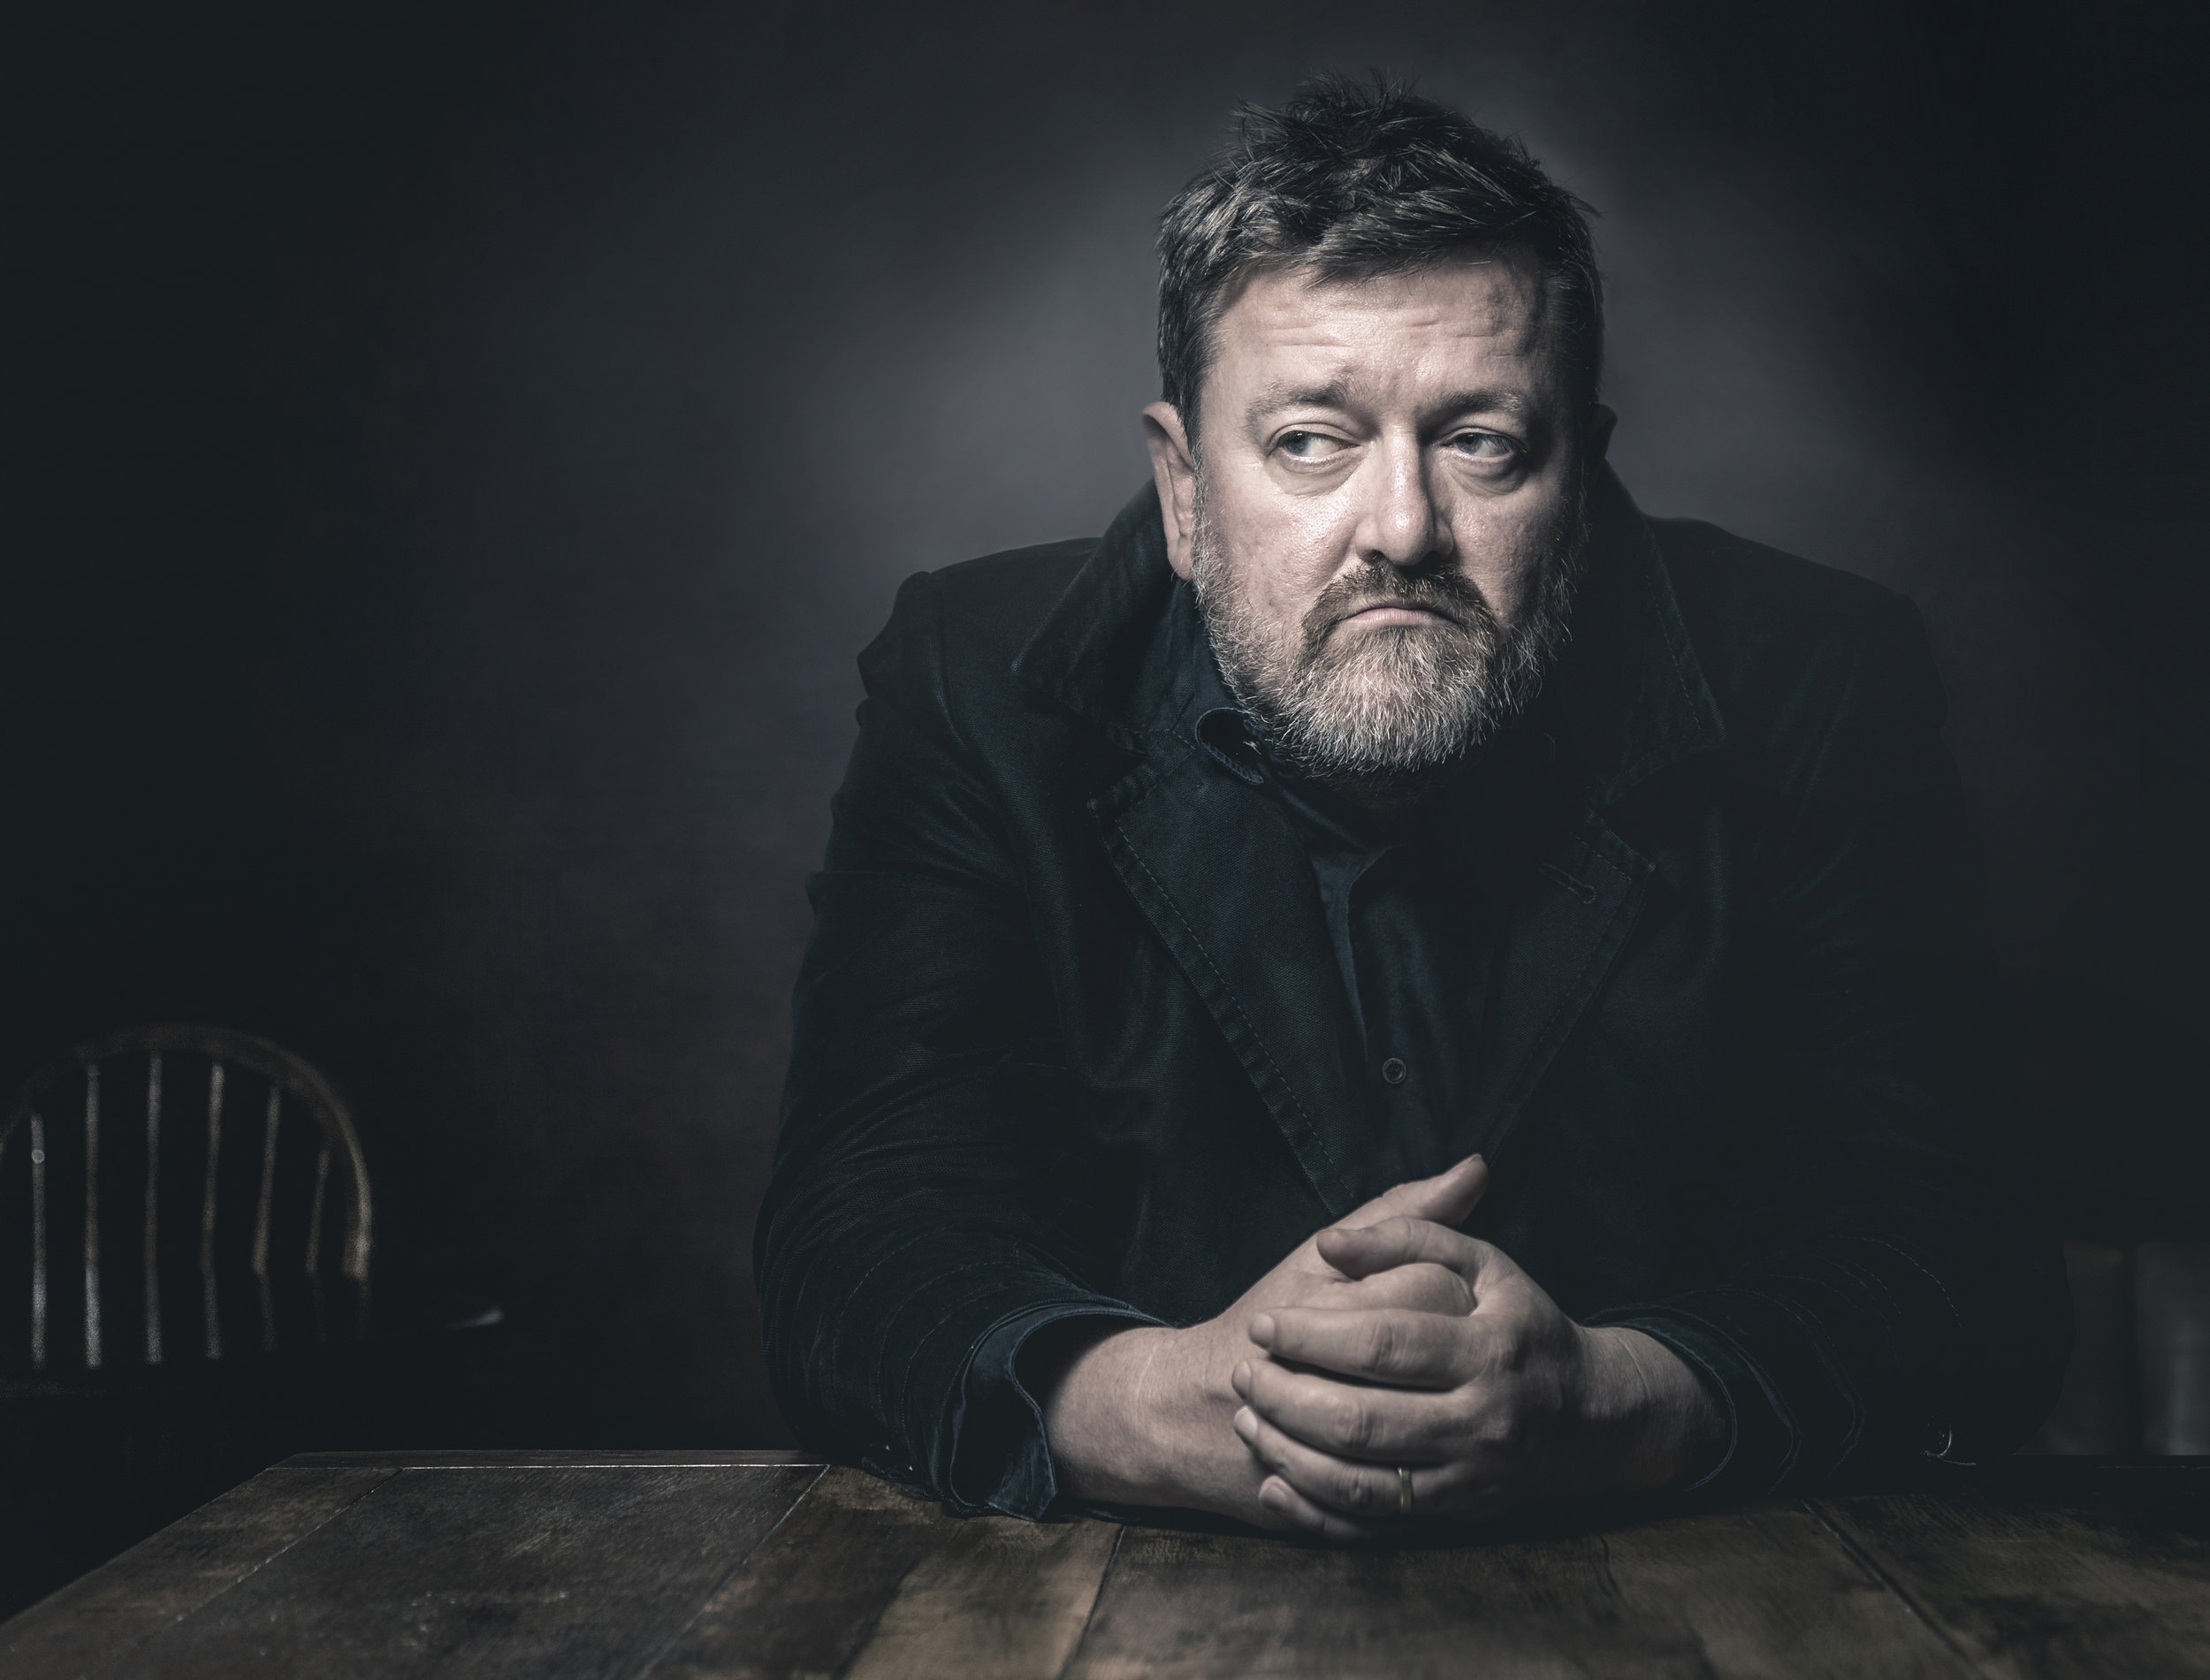 Elbow singer songwriter, Guy Garvey